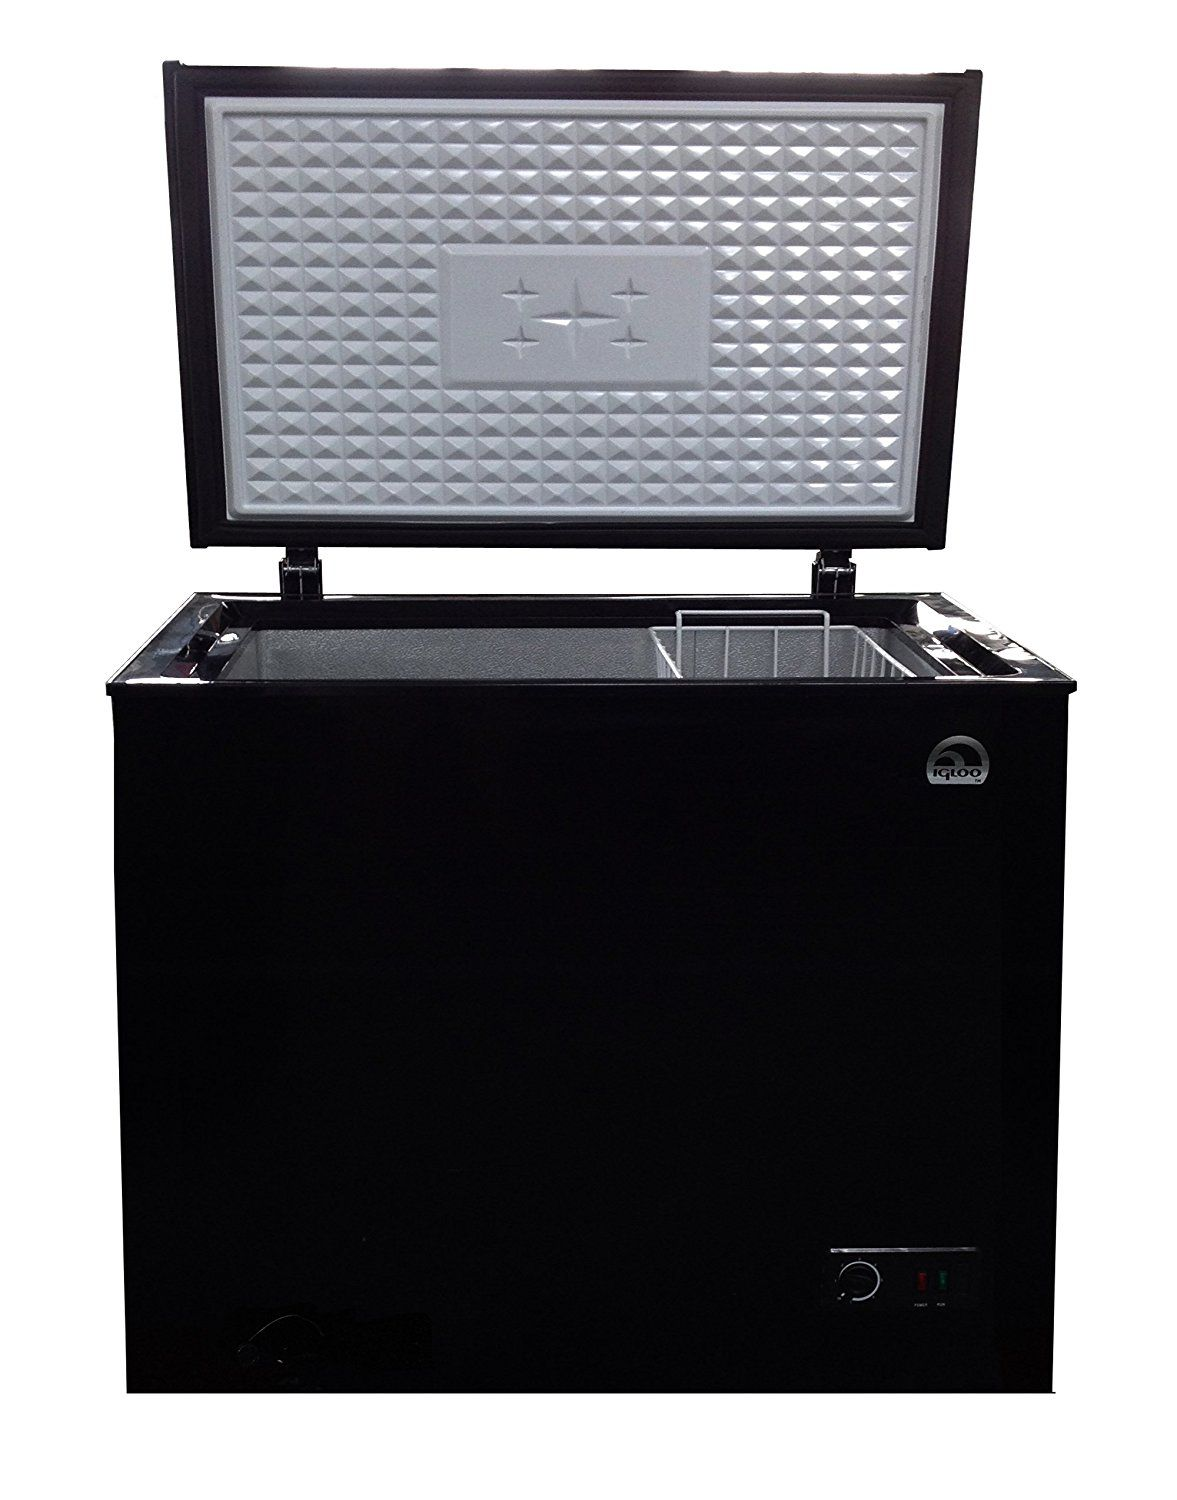 Igloo Frf705 Black 7 1 Cu Ft Chest Freezer Black You Can Get Additional Details At The Image Link Chest Freezer Home Brewing Freezer